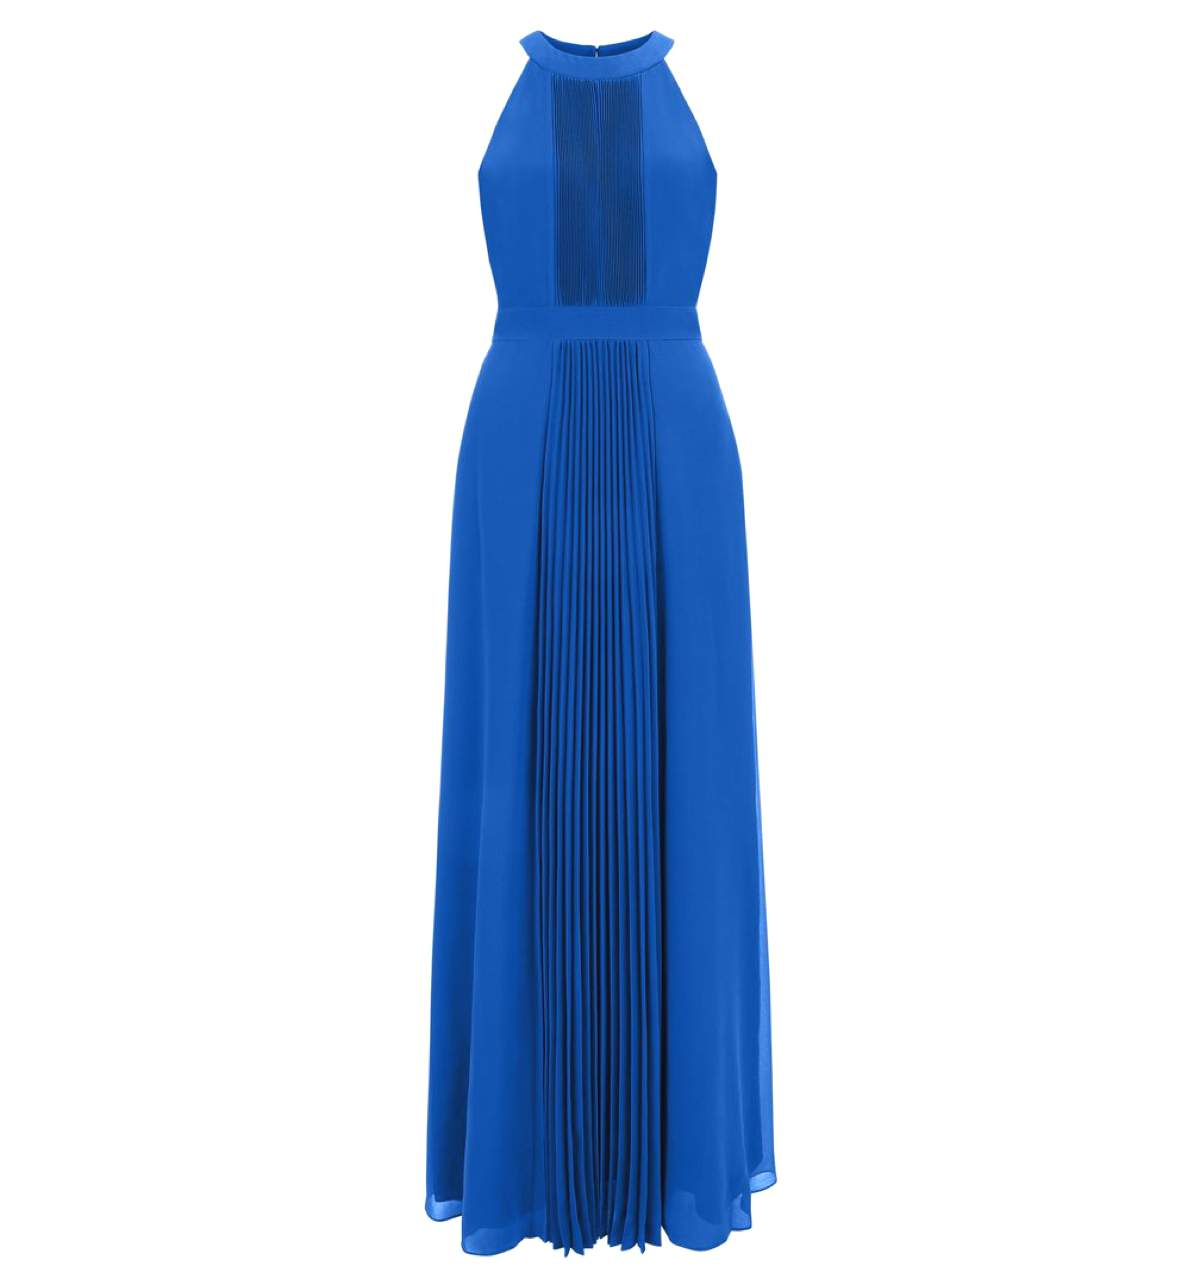 HOBBS Annalise Maxi Dress £159